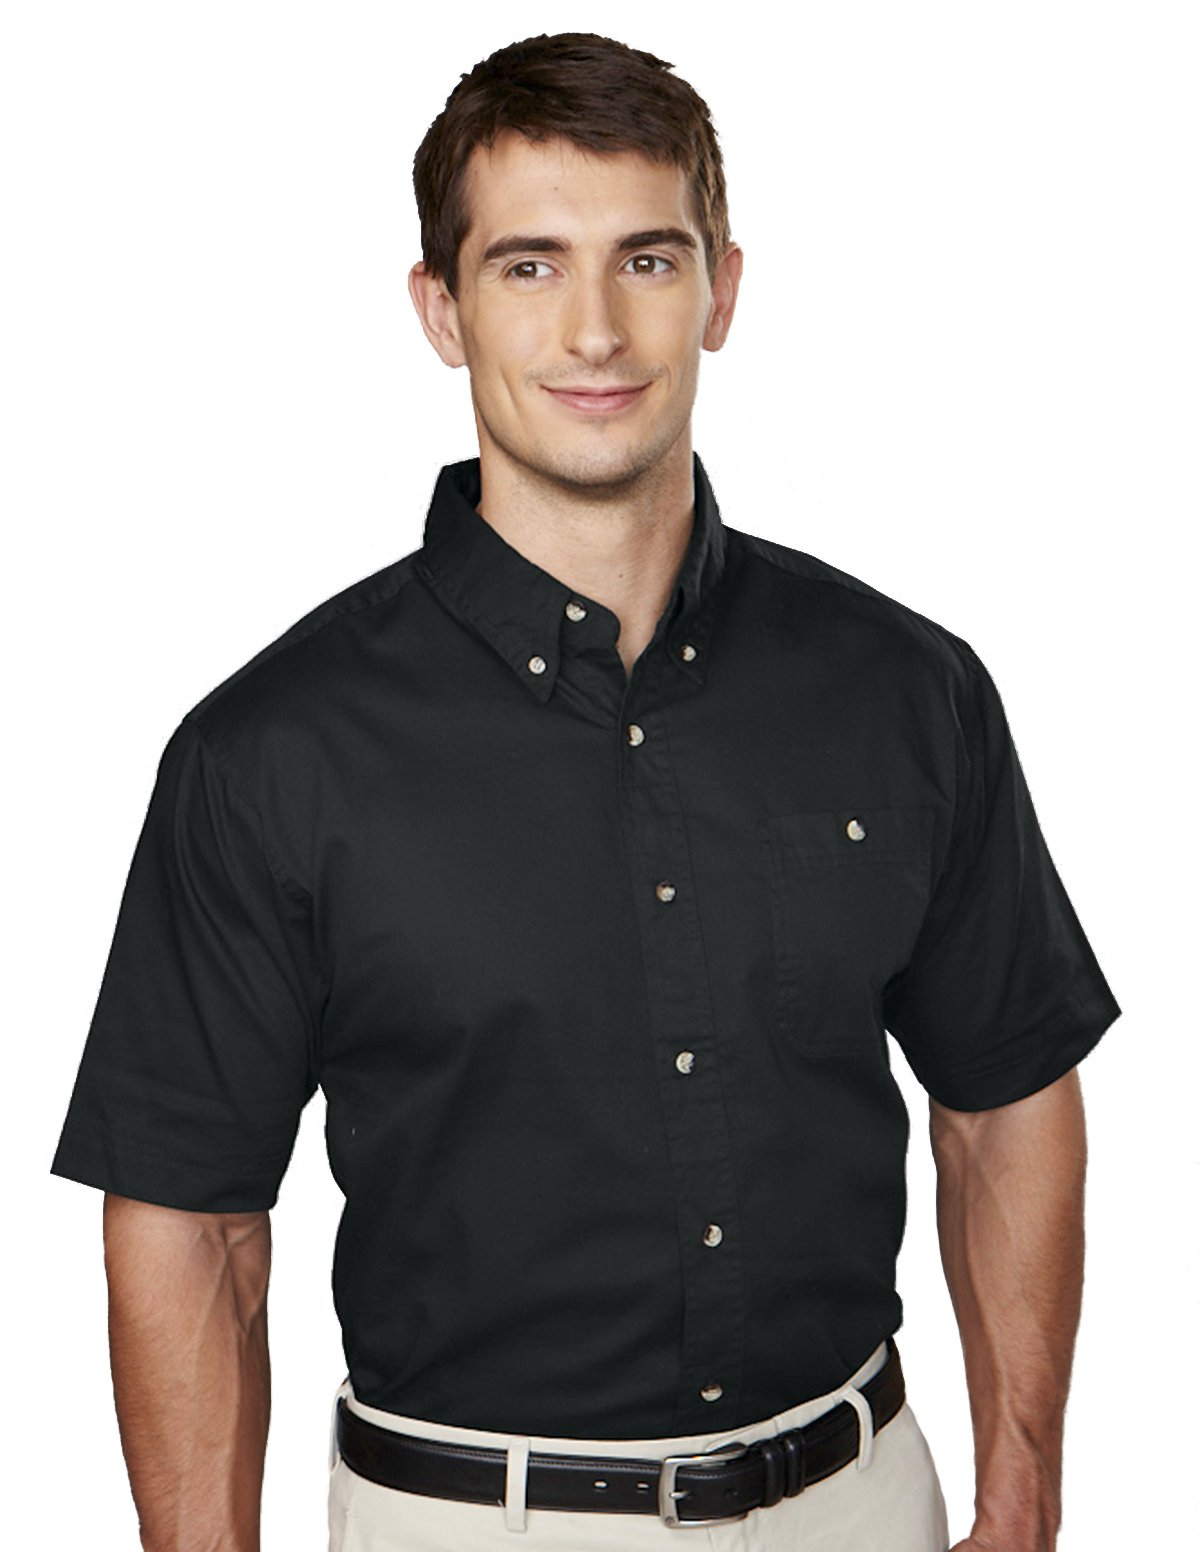 Pocket Twill Short Sleeve Mens Cotton Shirt